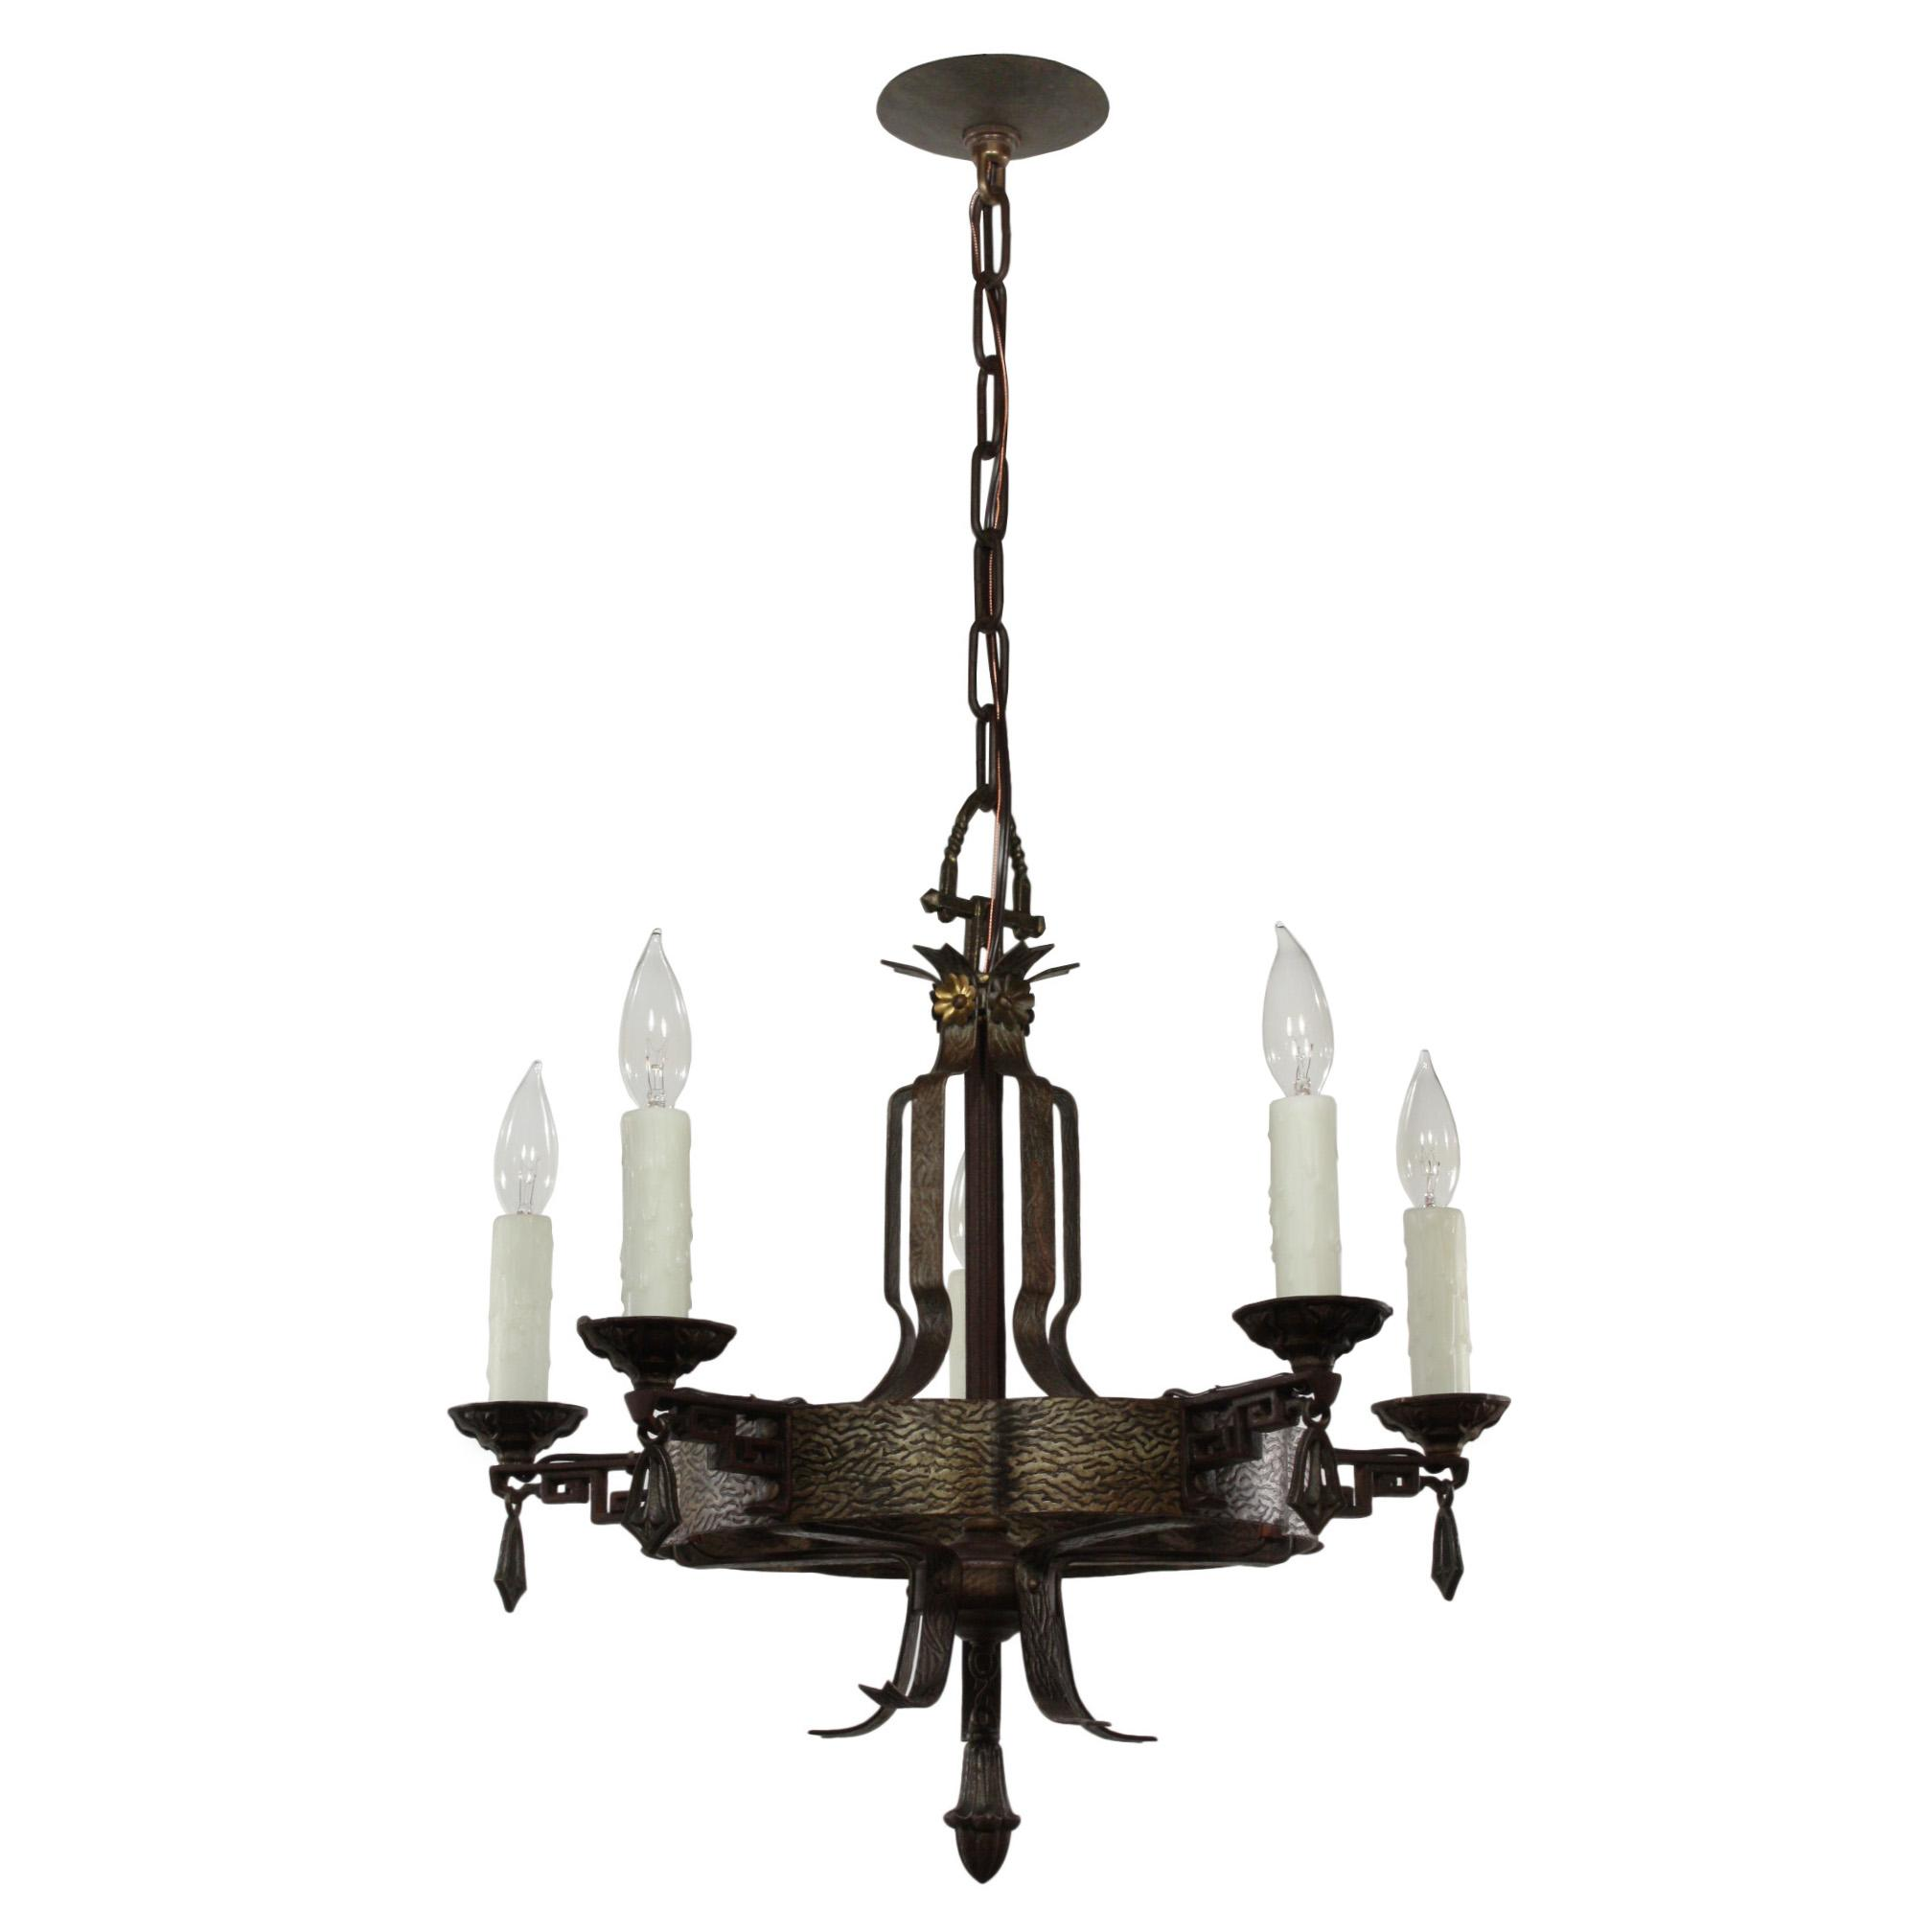 Unusual Antique Cast Iron Tudor Chandelier C 1920 from